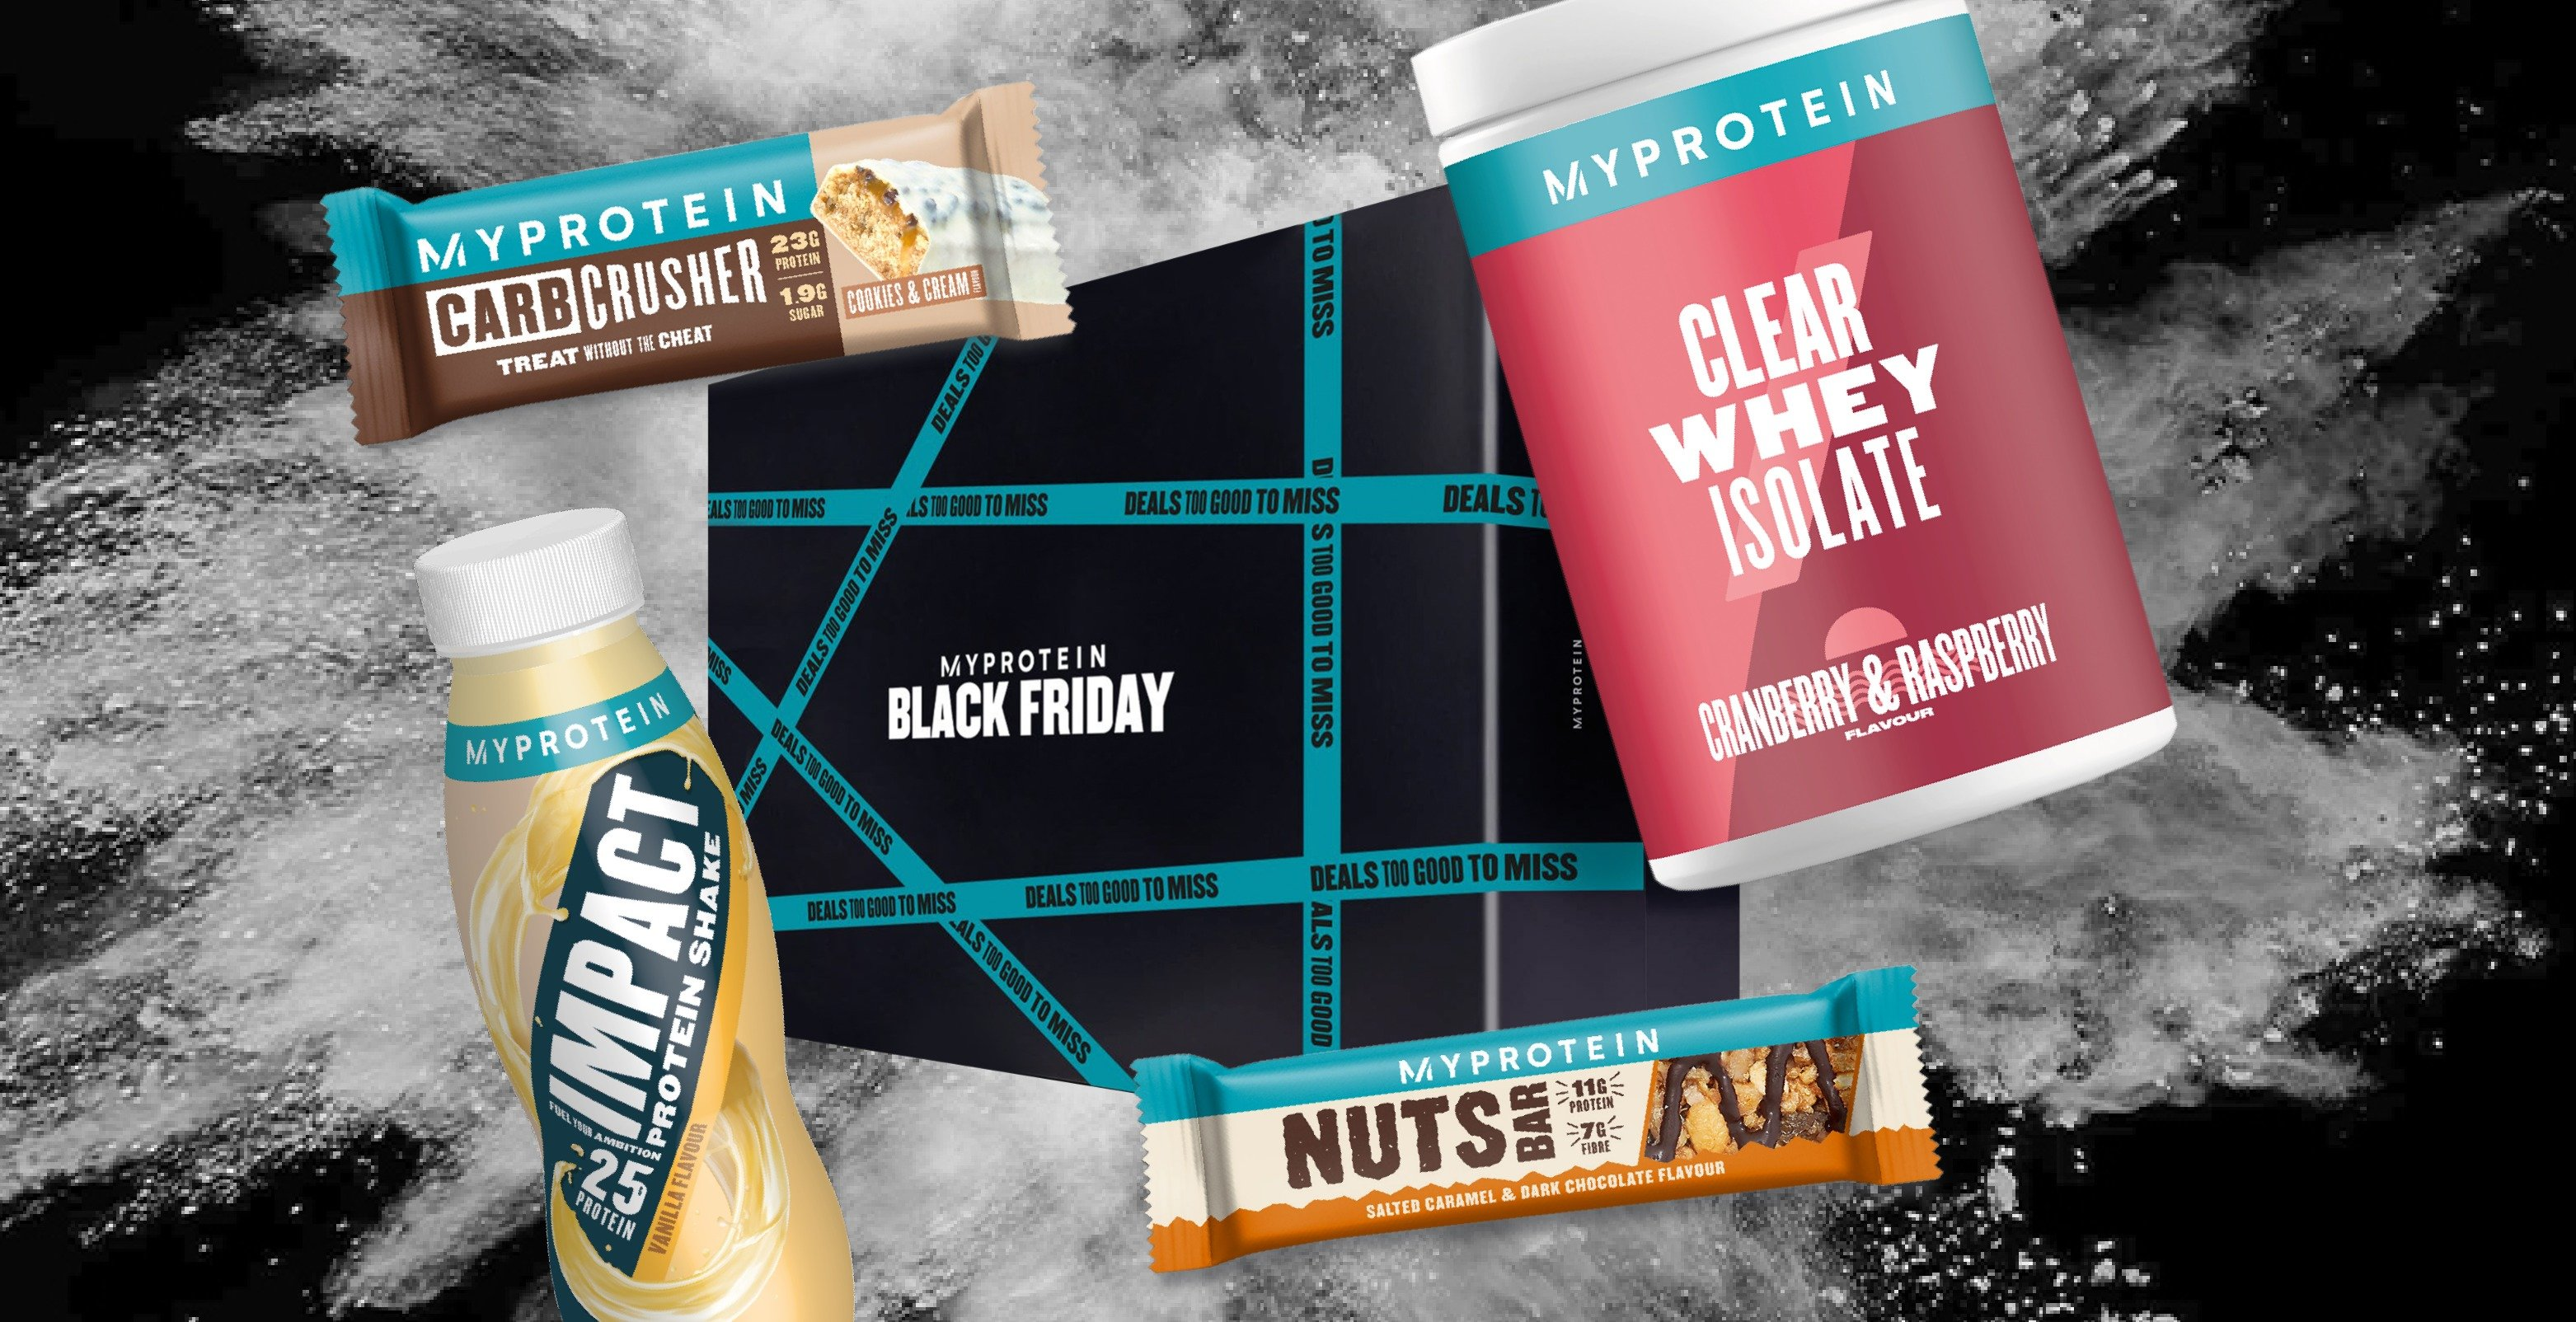 What To Buy This Black Friday Supplement Health Nutrition Deals Myprotein